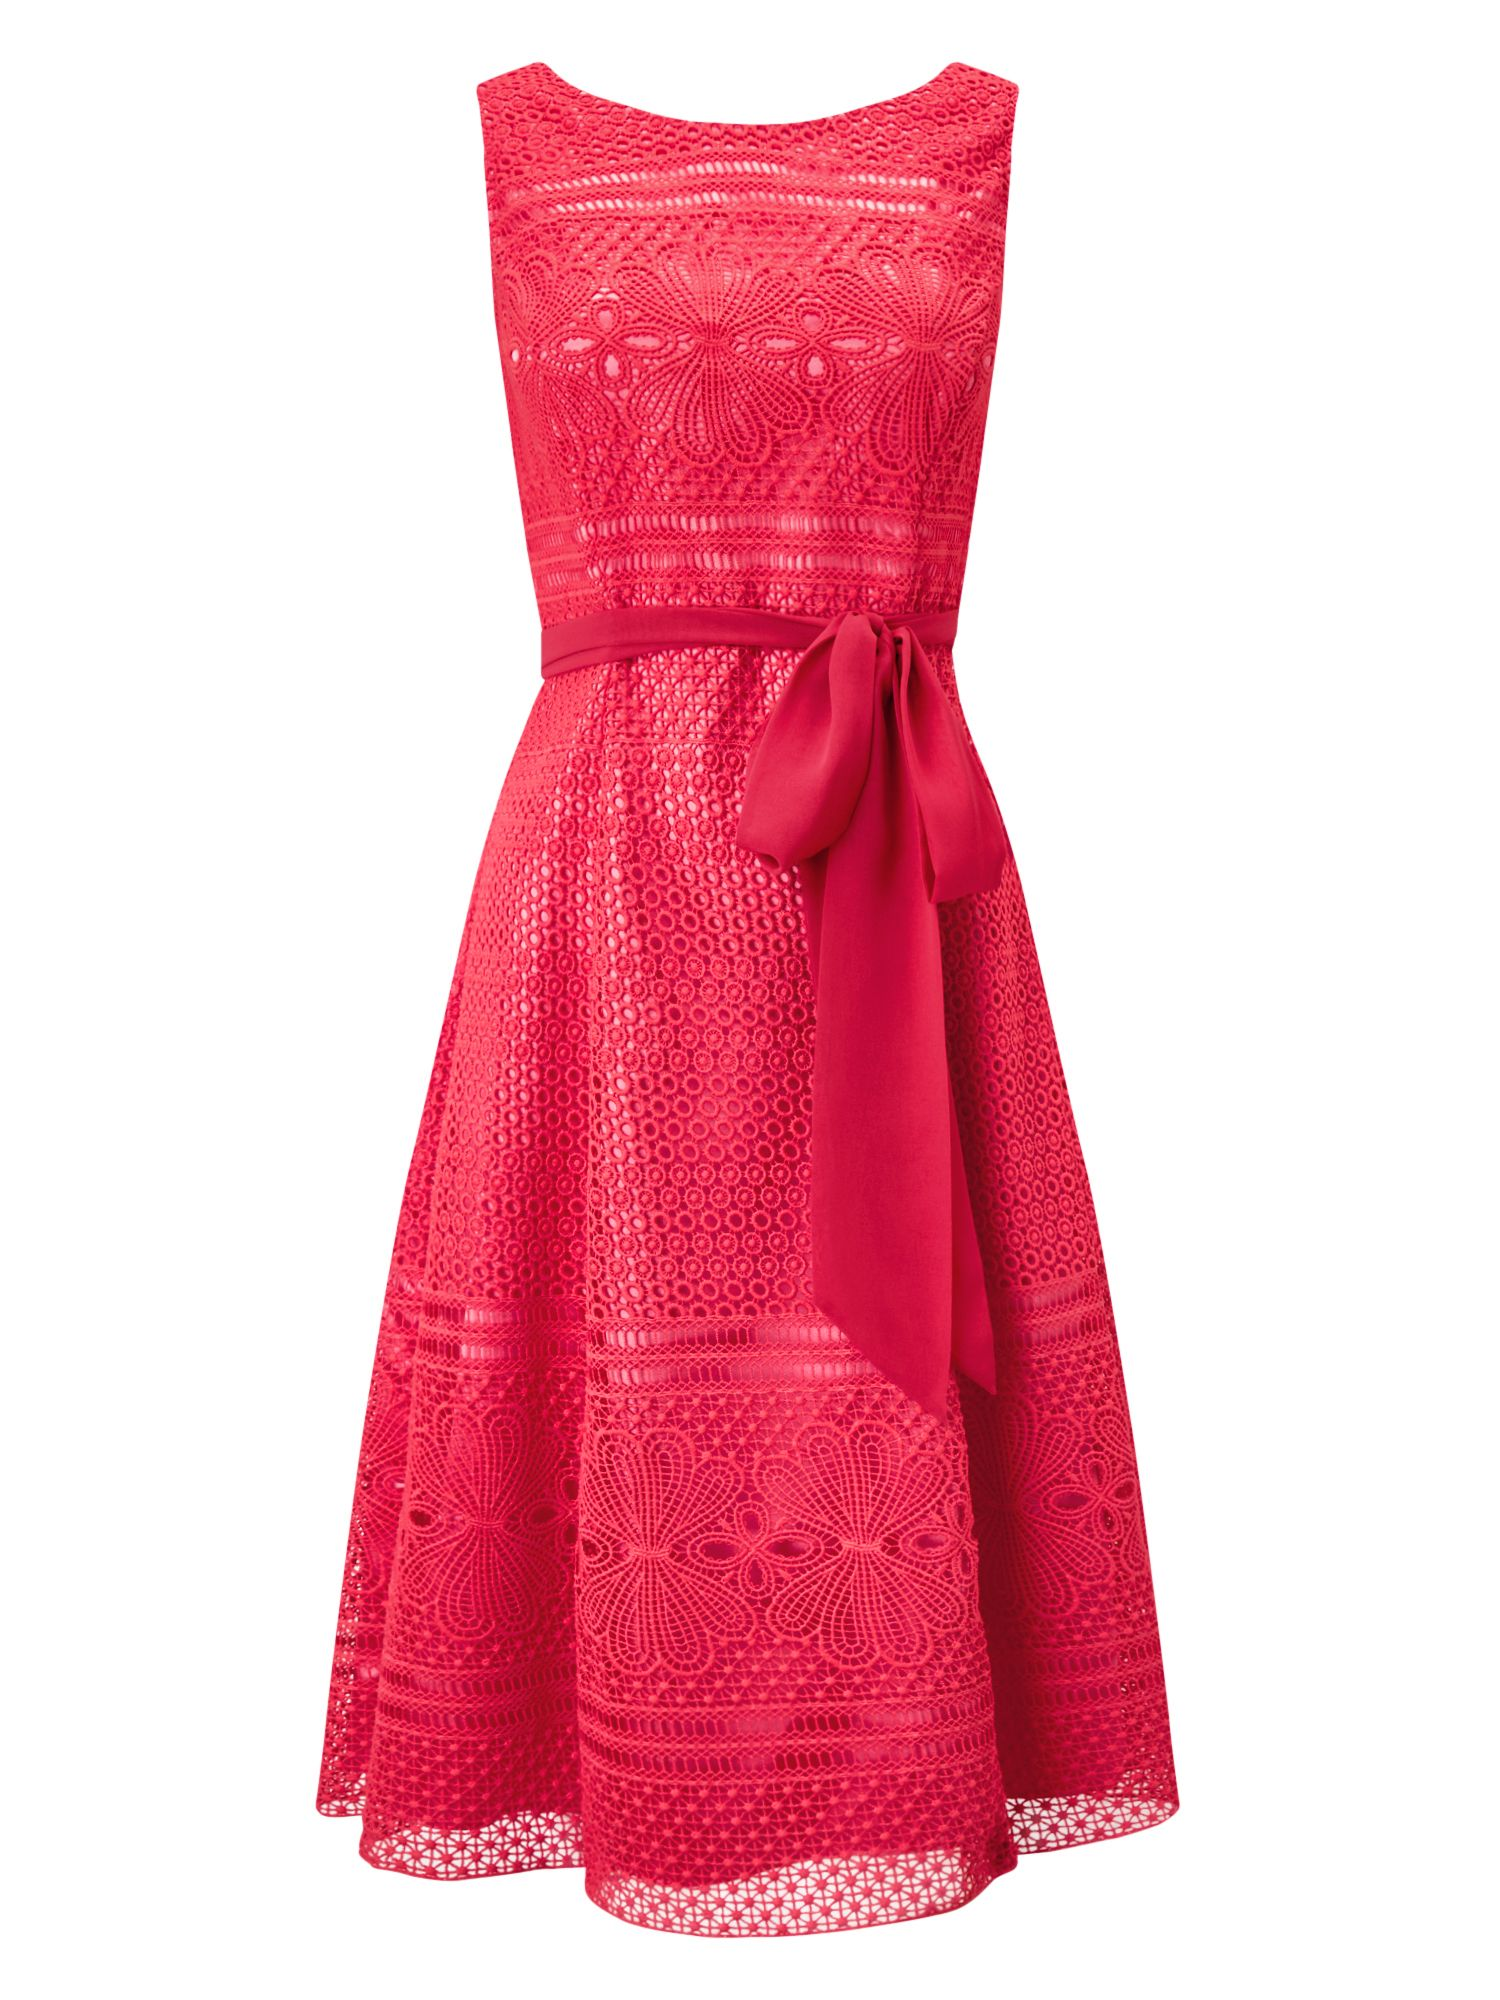 Jacques Vert Lace And Fit Flare Dress, Pink